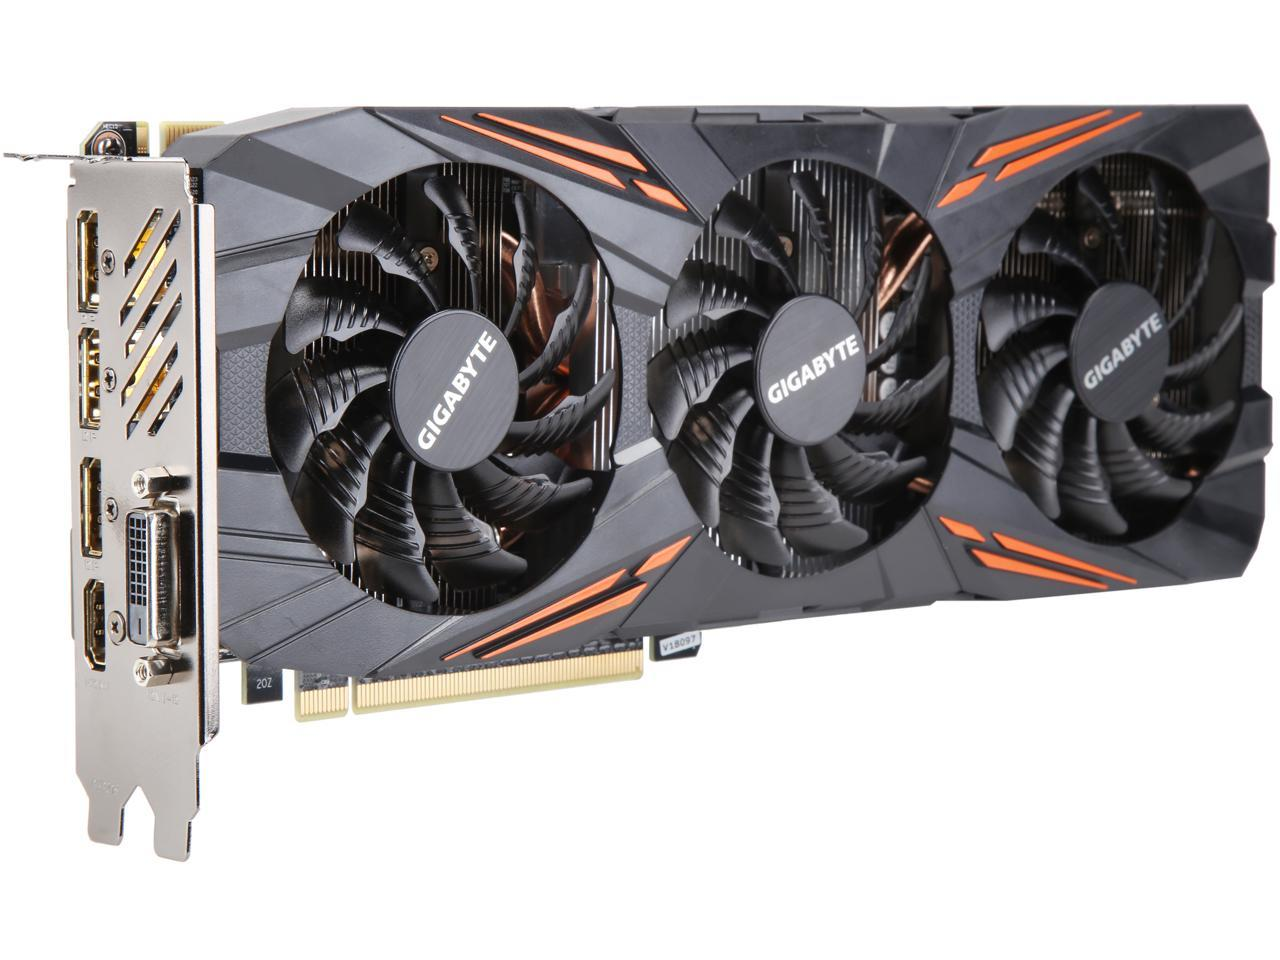 GigaByte GeForce GTX 1070 DirectX 12 8GB 256-Bit ATX Video Card